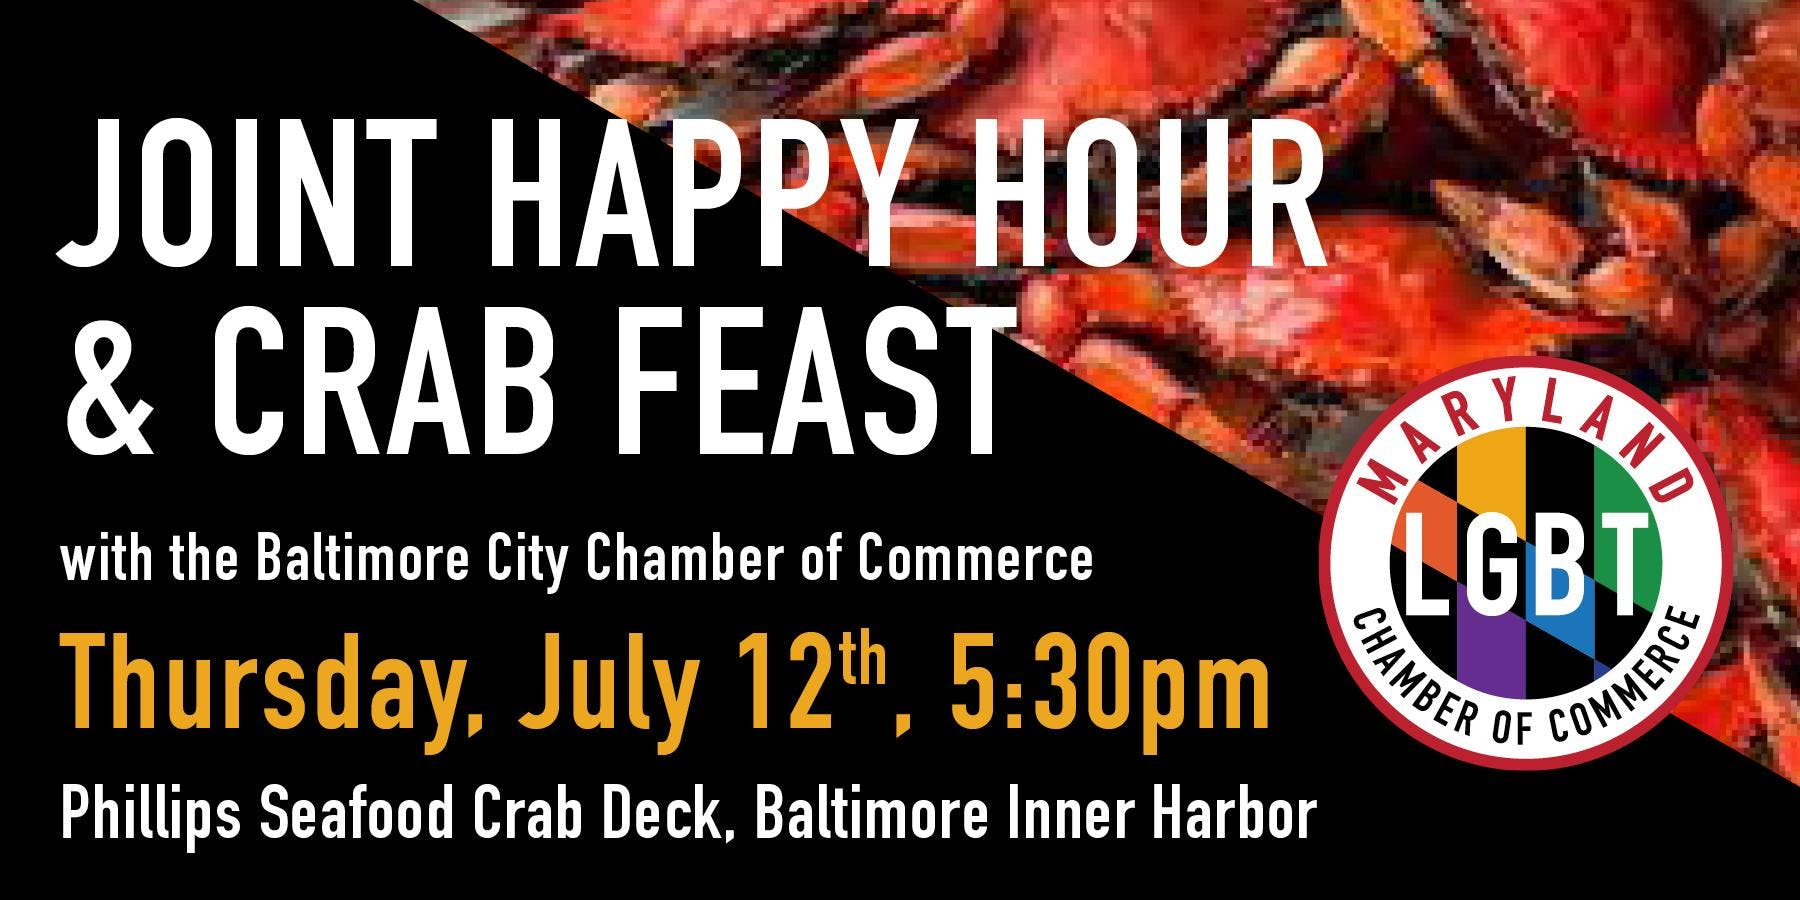 Joint Happy Hour & Crab Feast